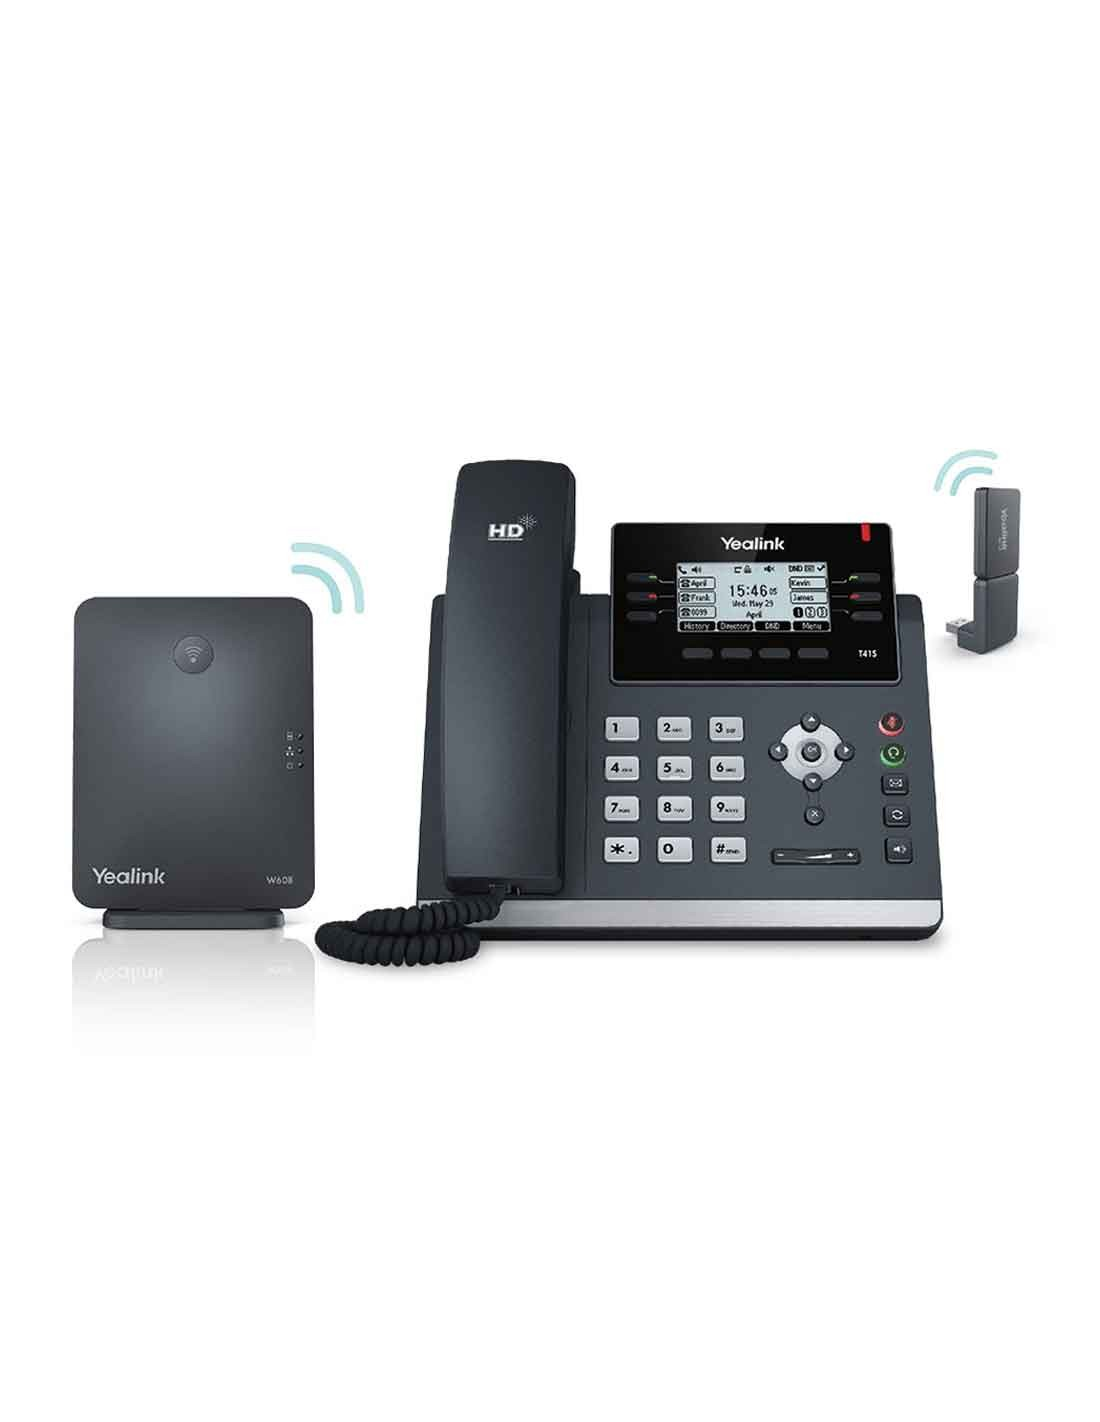 Yealink W41P DECT Desk Phone with best deal options - cheap price and free delivery in Dubai